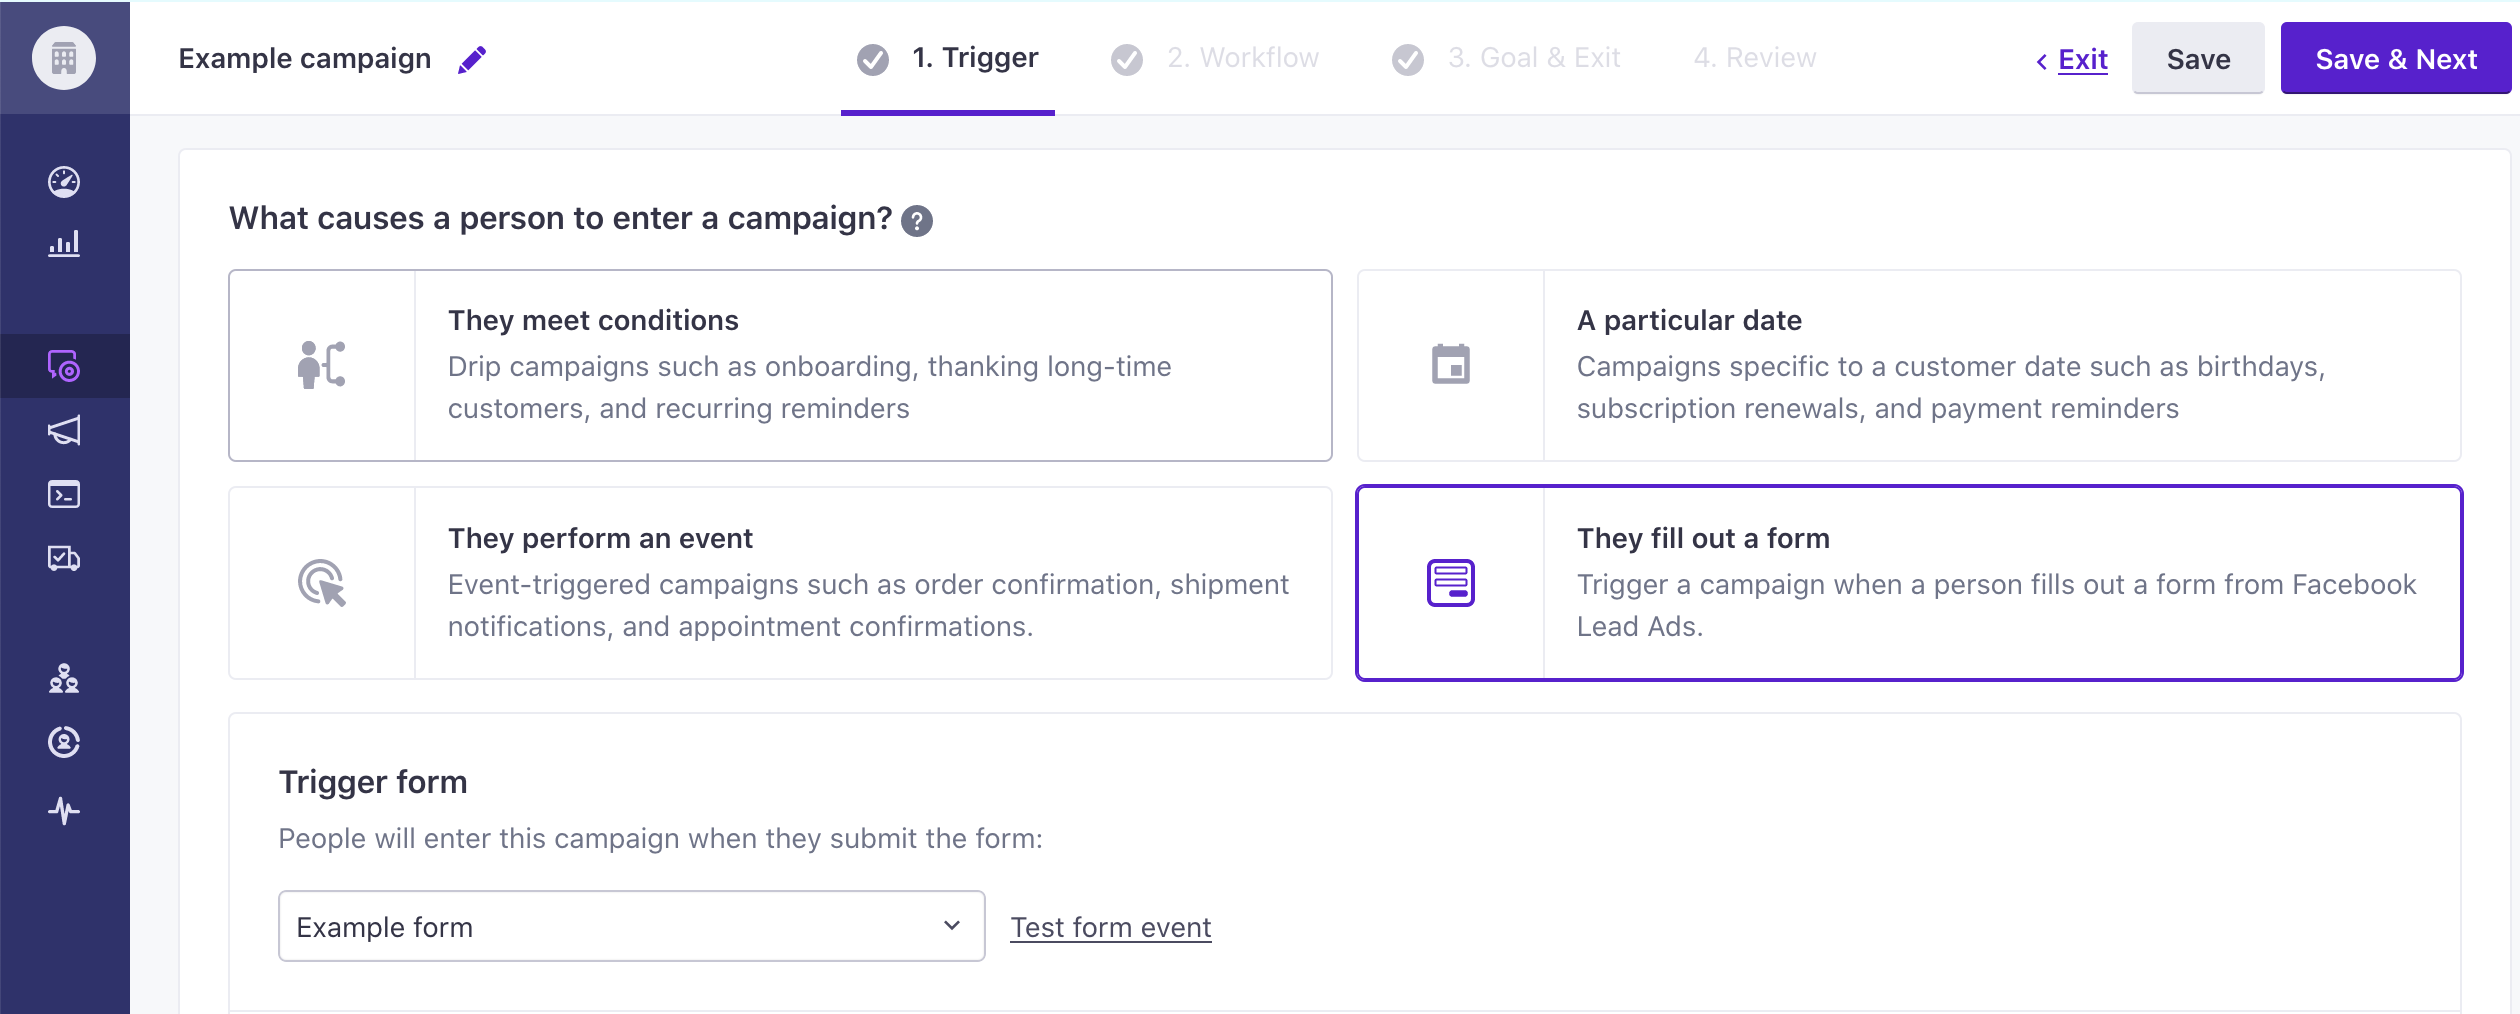 Trigger campaign from a lead ad form